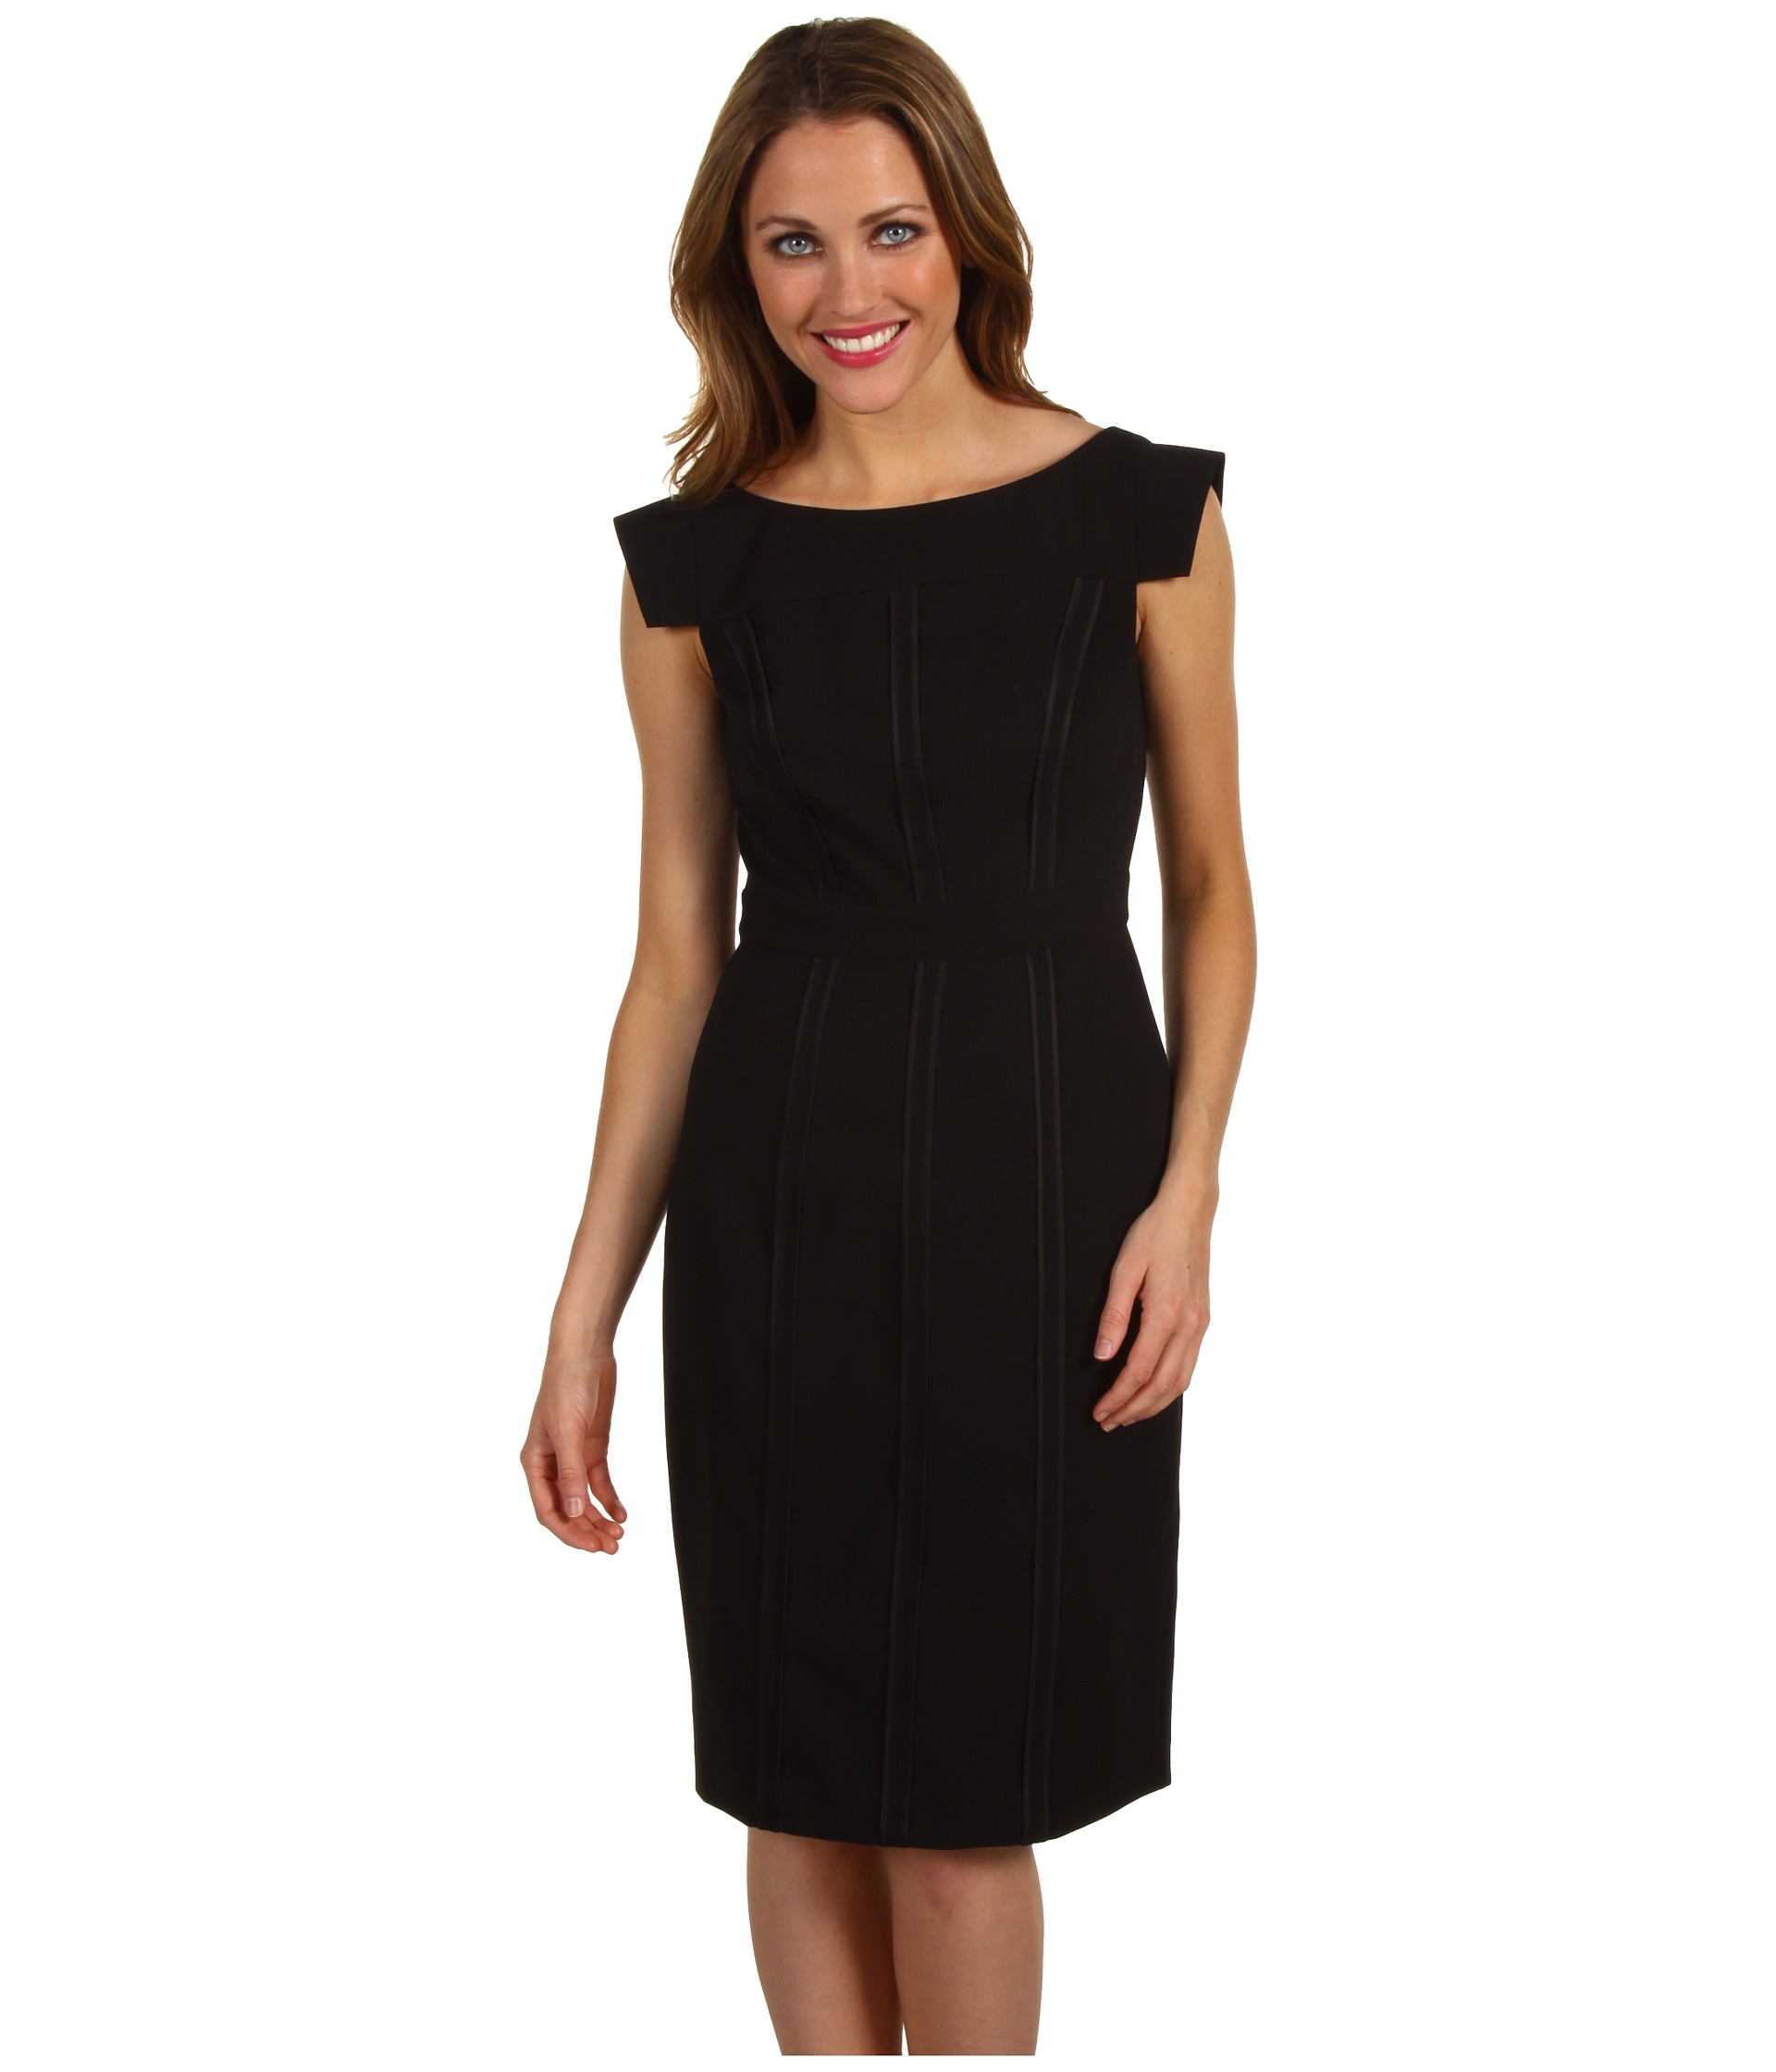 "I wear a black sheath dress with a light gray blazer all the time for biglaw events and court. I'm in the West (but not California). Never occurred to me that I might not be ""formal"" enough. How is a dress with a jacket less formal than a skirt, shirt, and jacket? To me, a dress is even more formal."